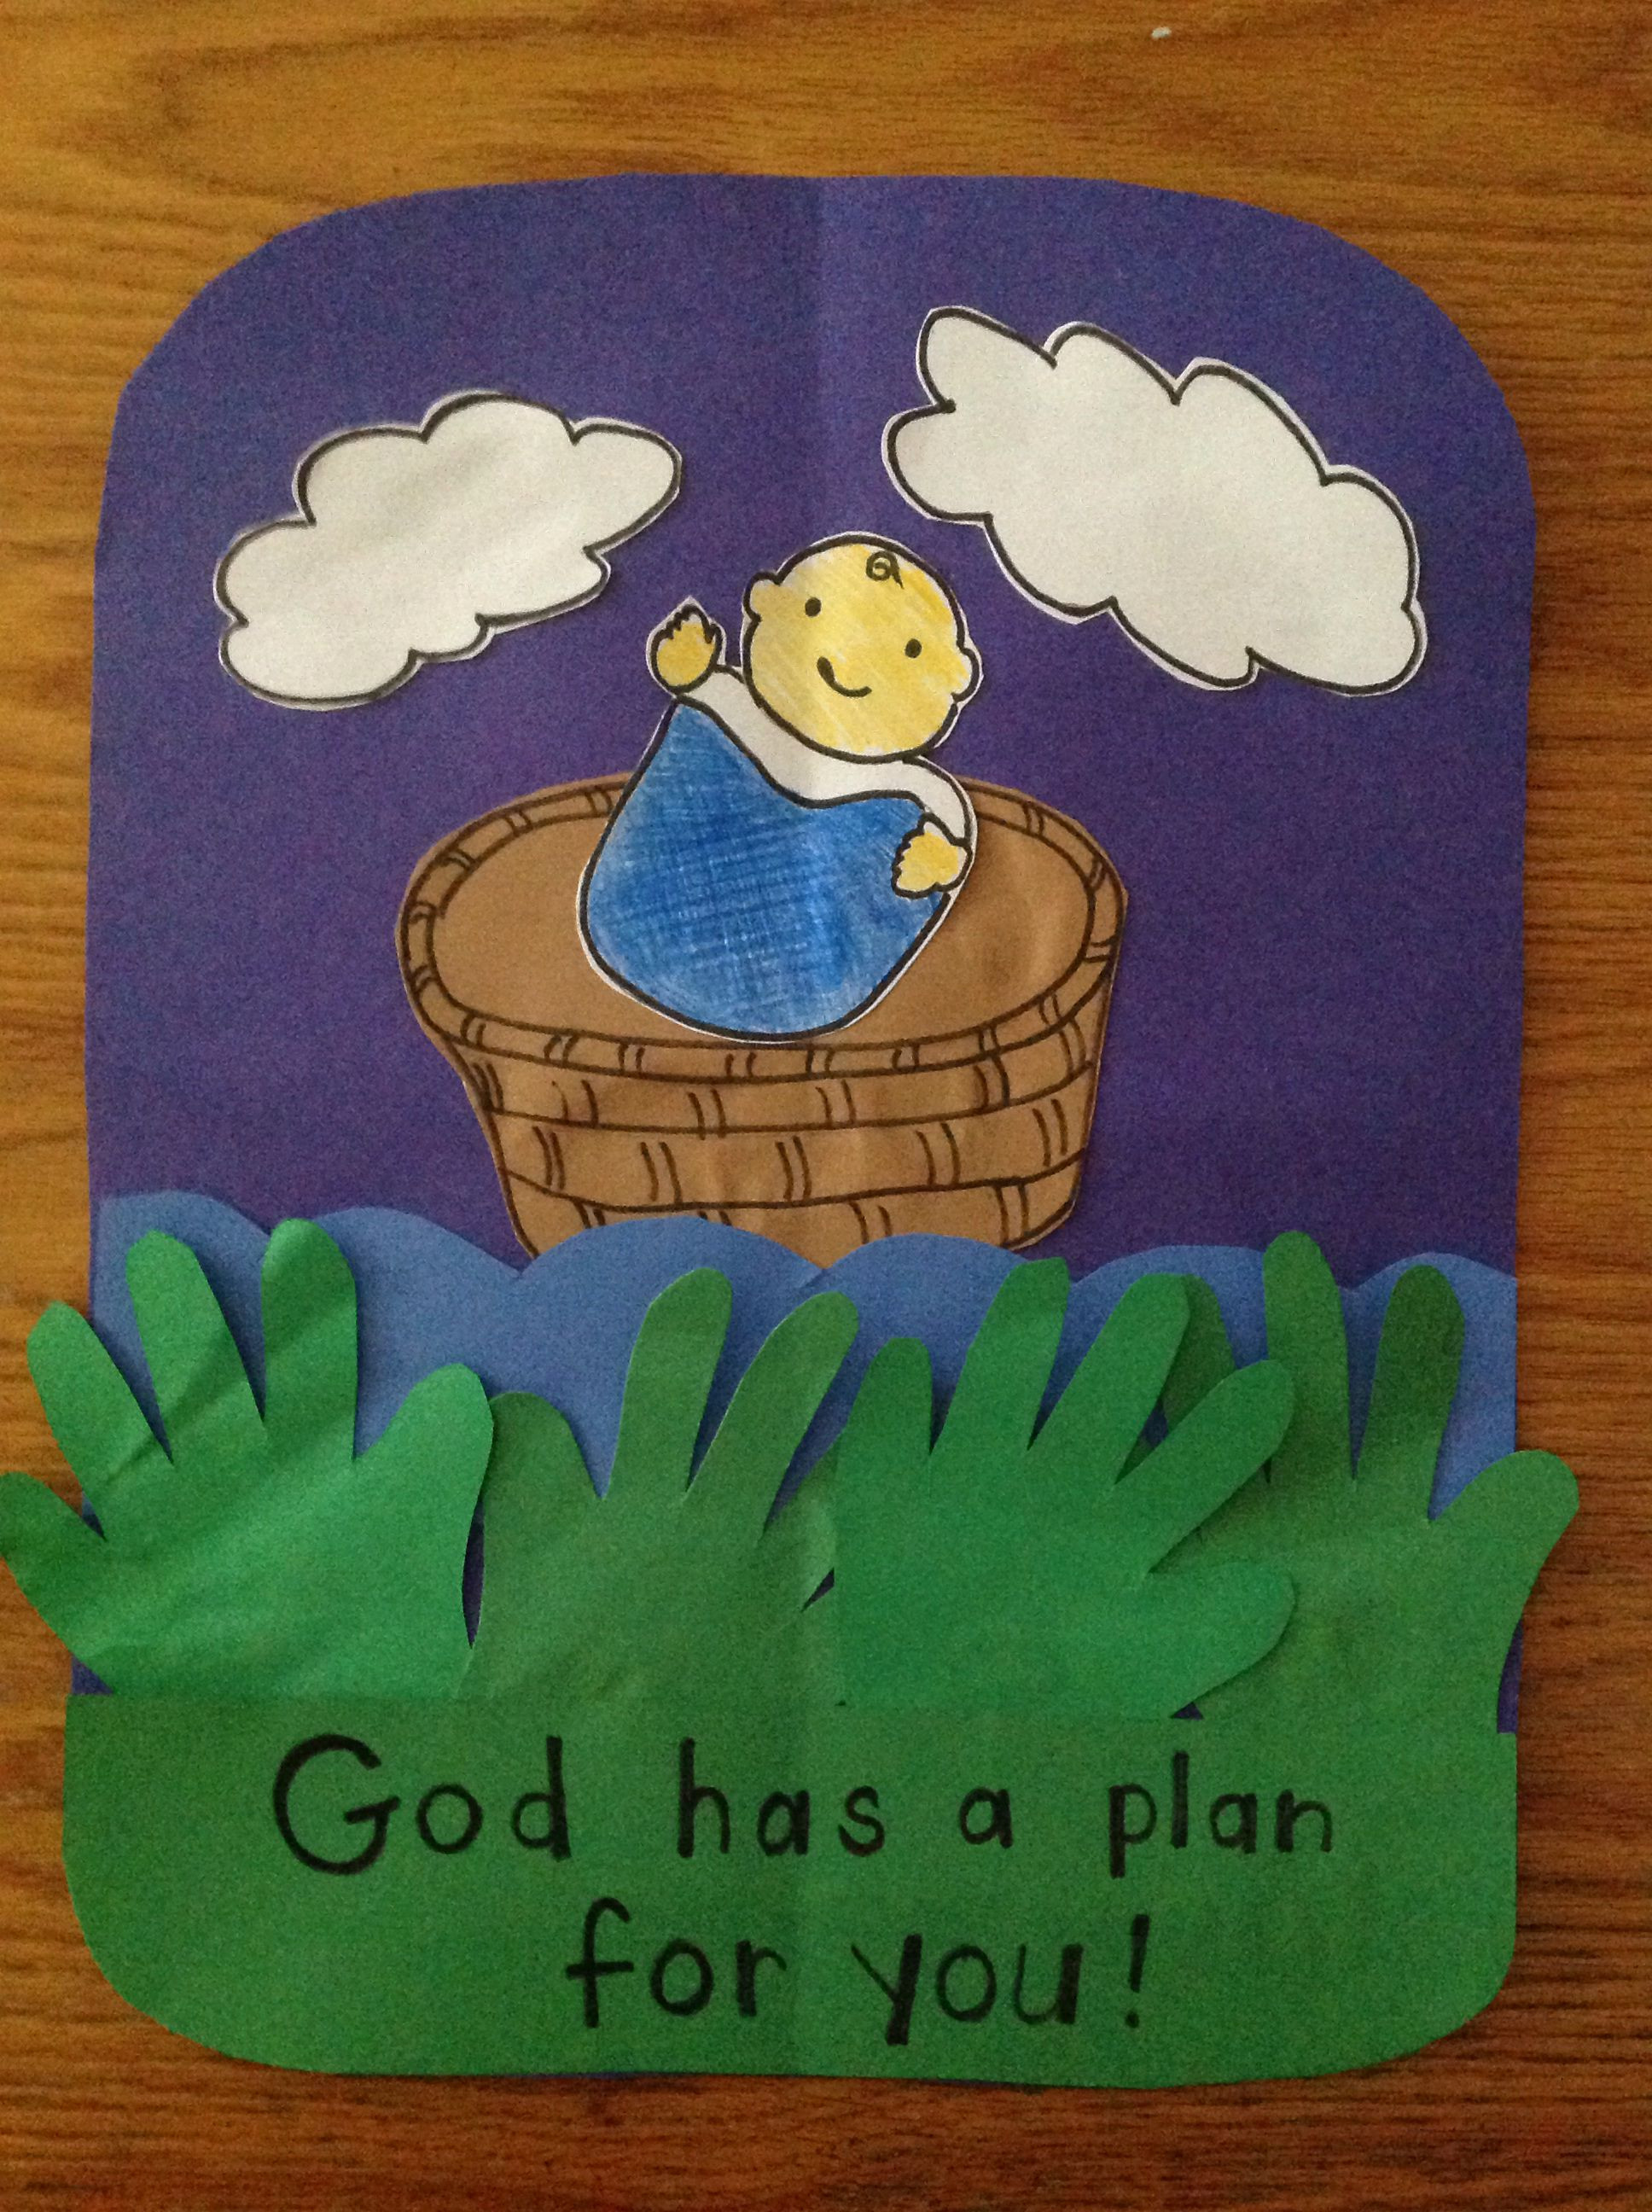 Best ideas about Bible Crafts For Preschoolers . Save or Pin Dream Home Baby Moses Craft Best Home Design Ideas Now.